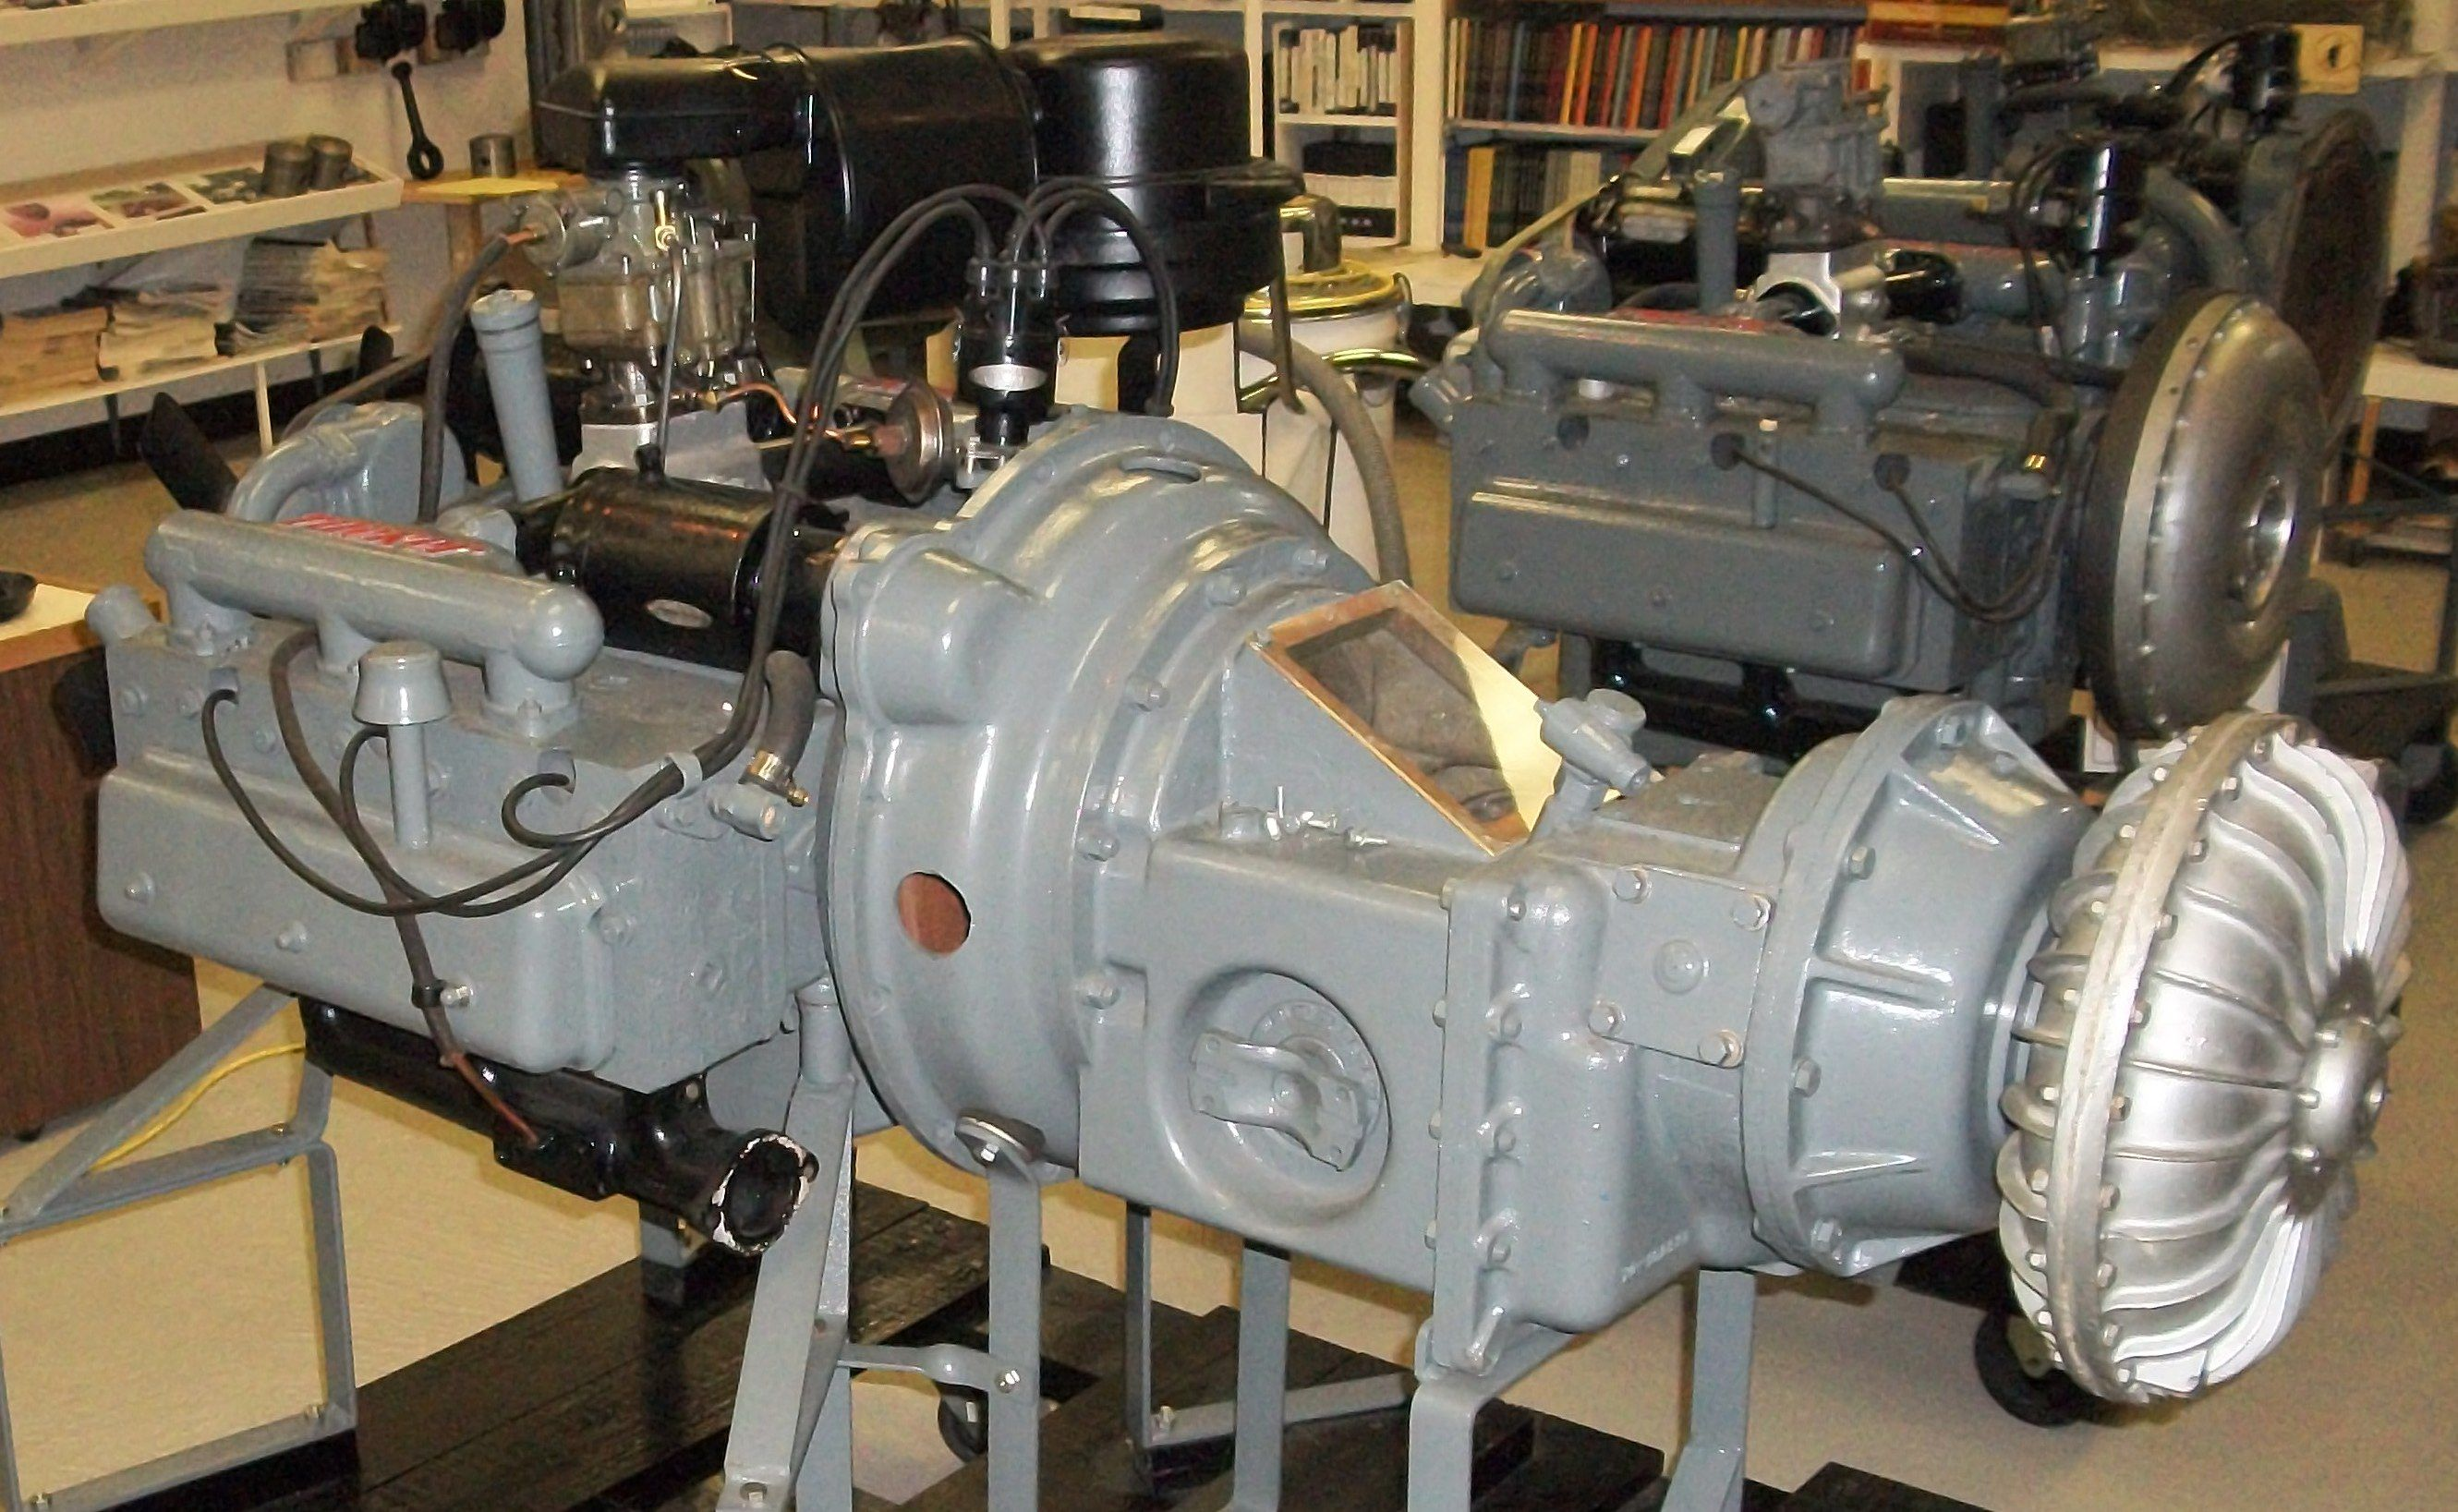 Tucker 335 engine and Tuckermatic R-1-2 transmission (trans